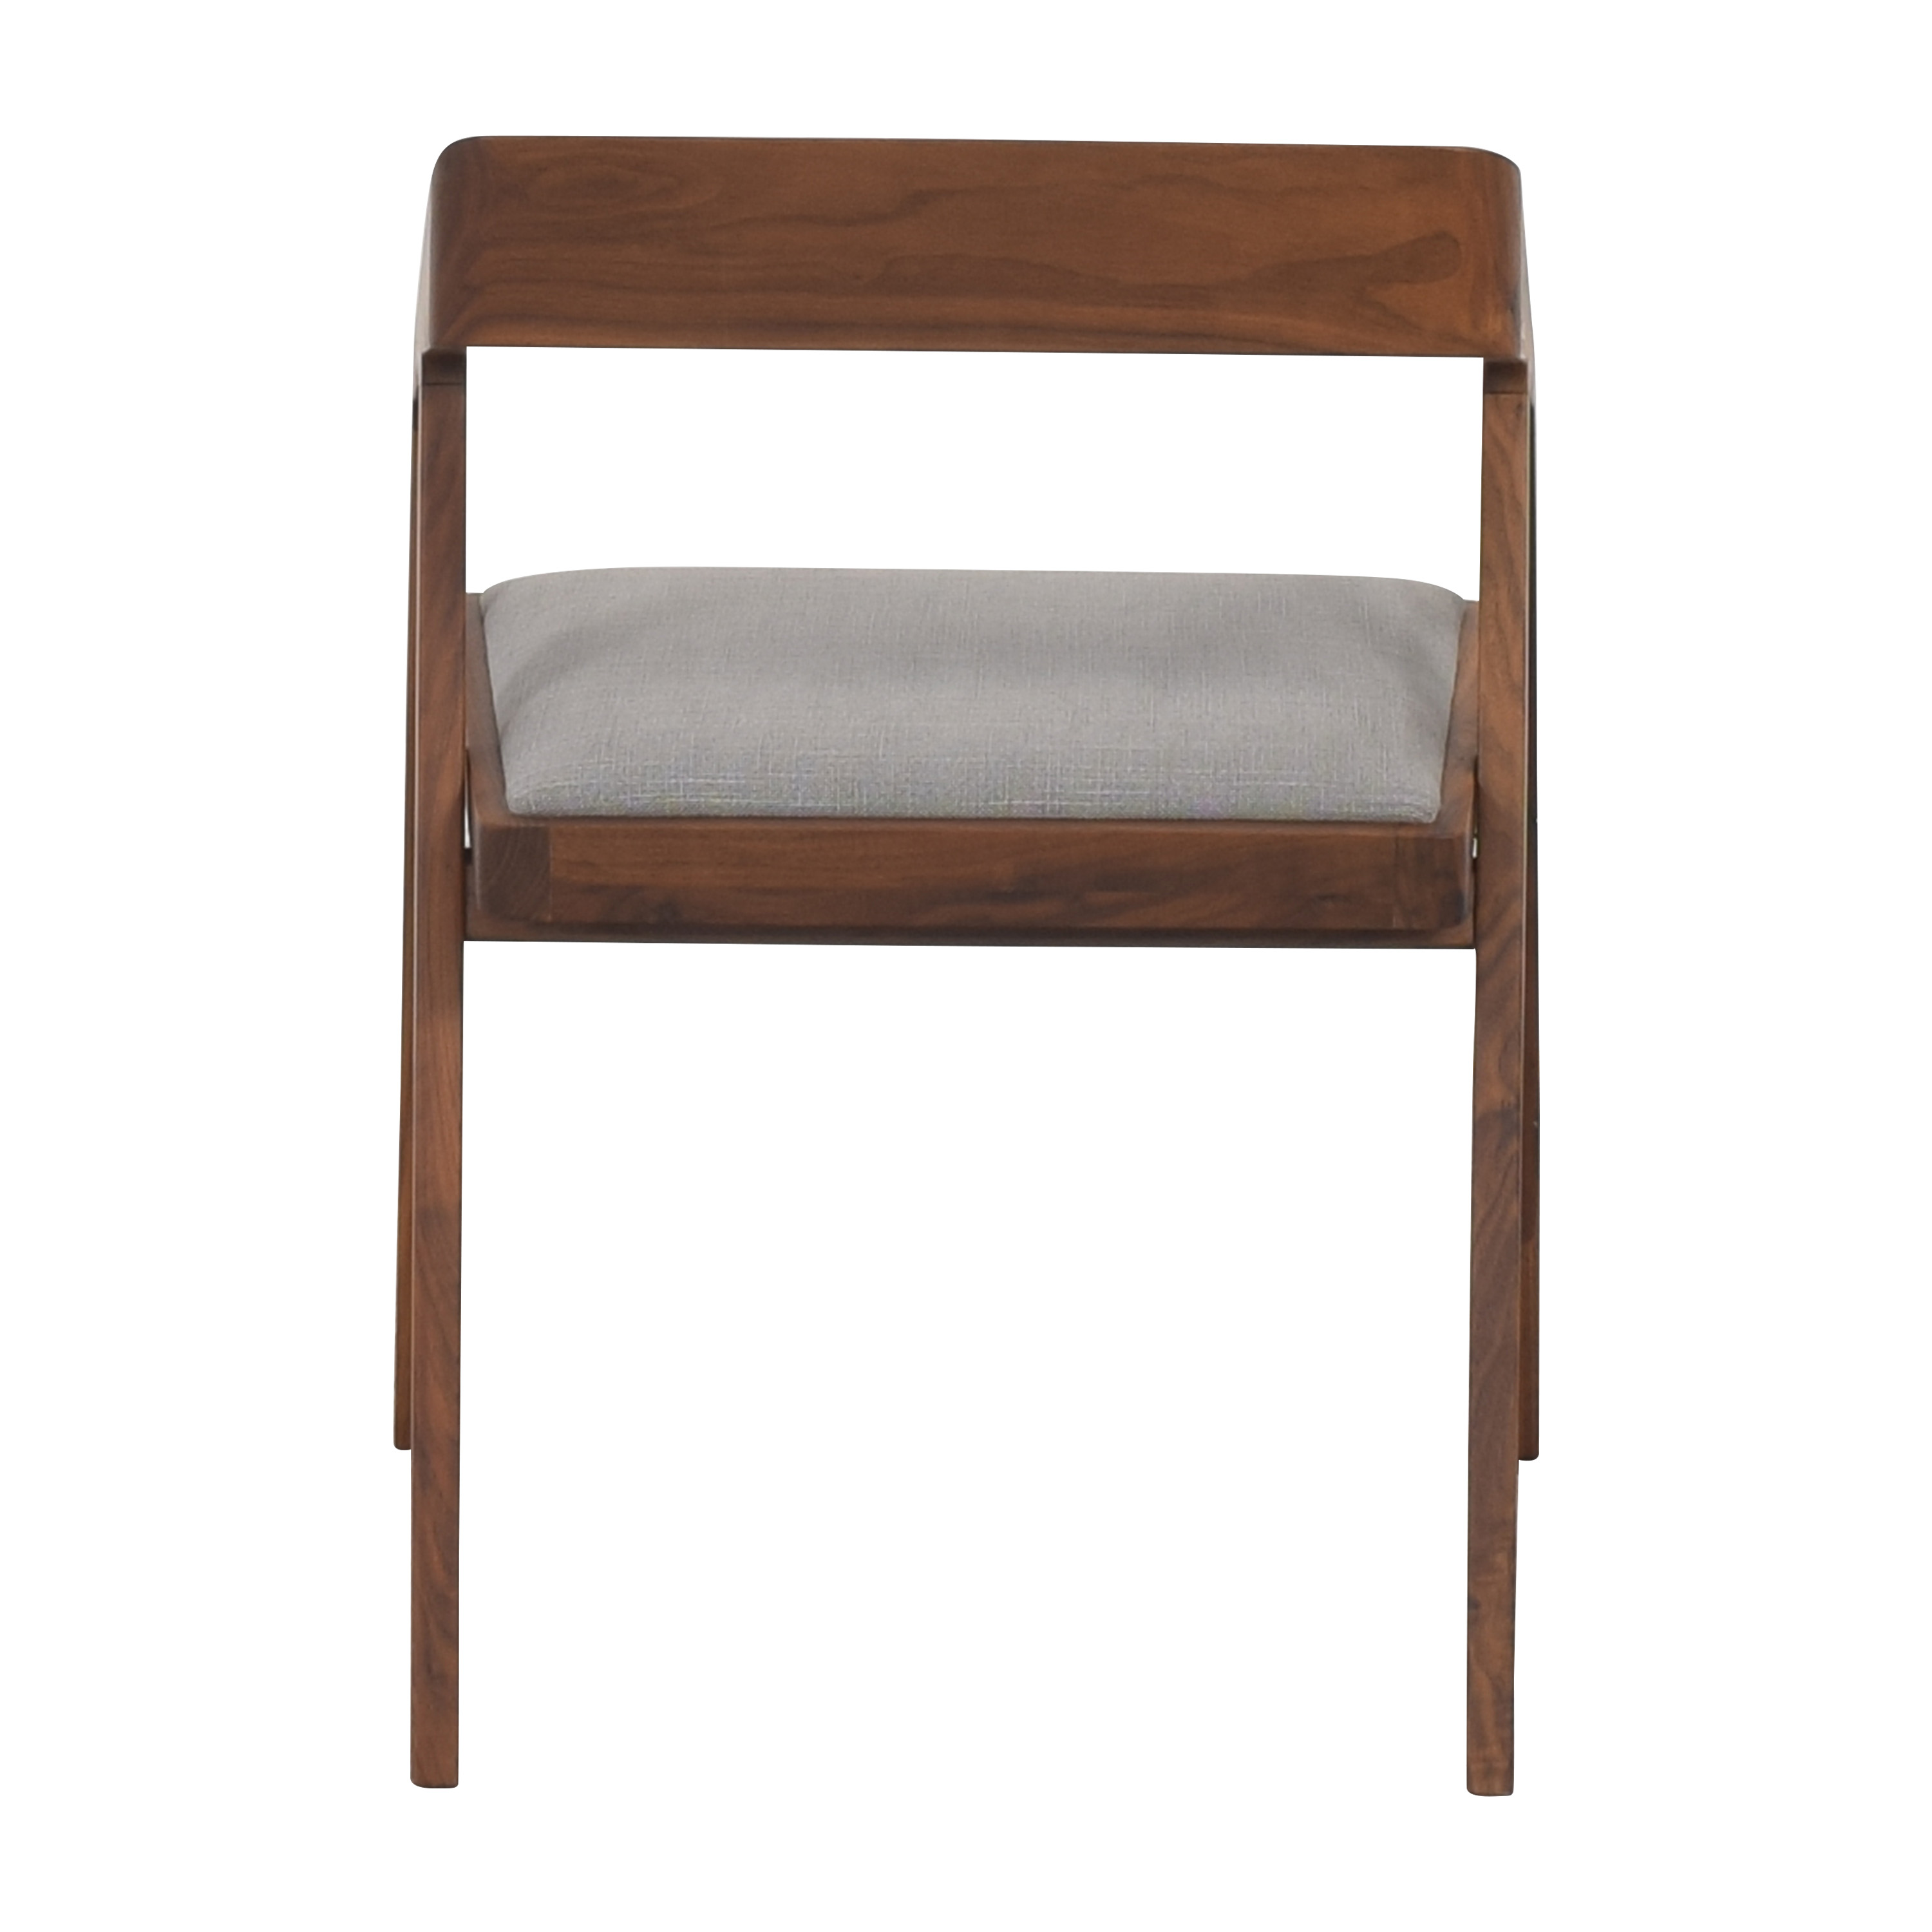 shop Jayson Home Jayson Home Side Chair online